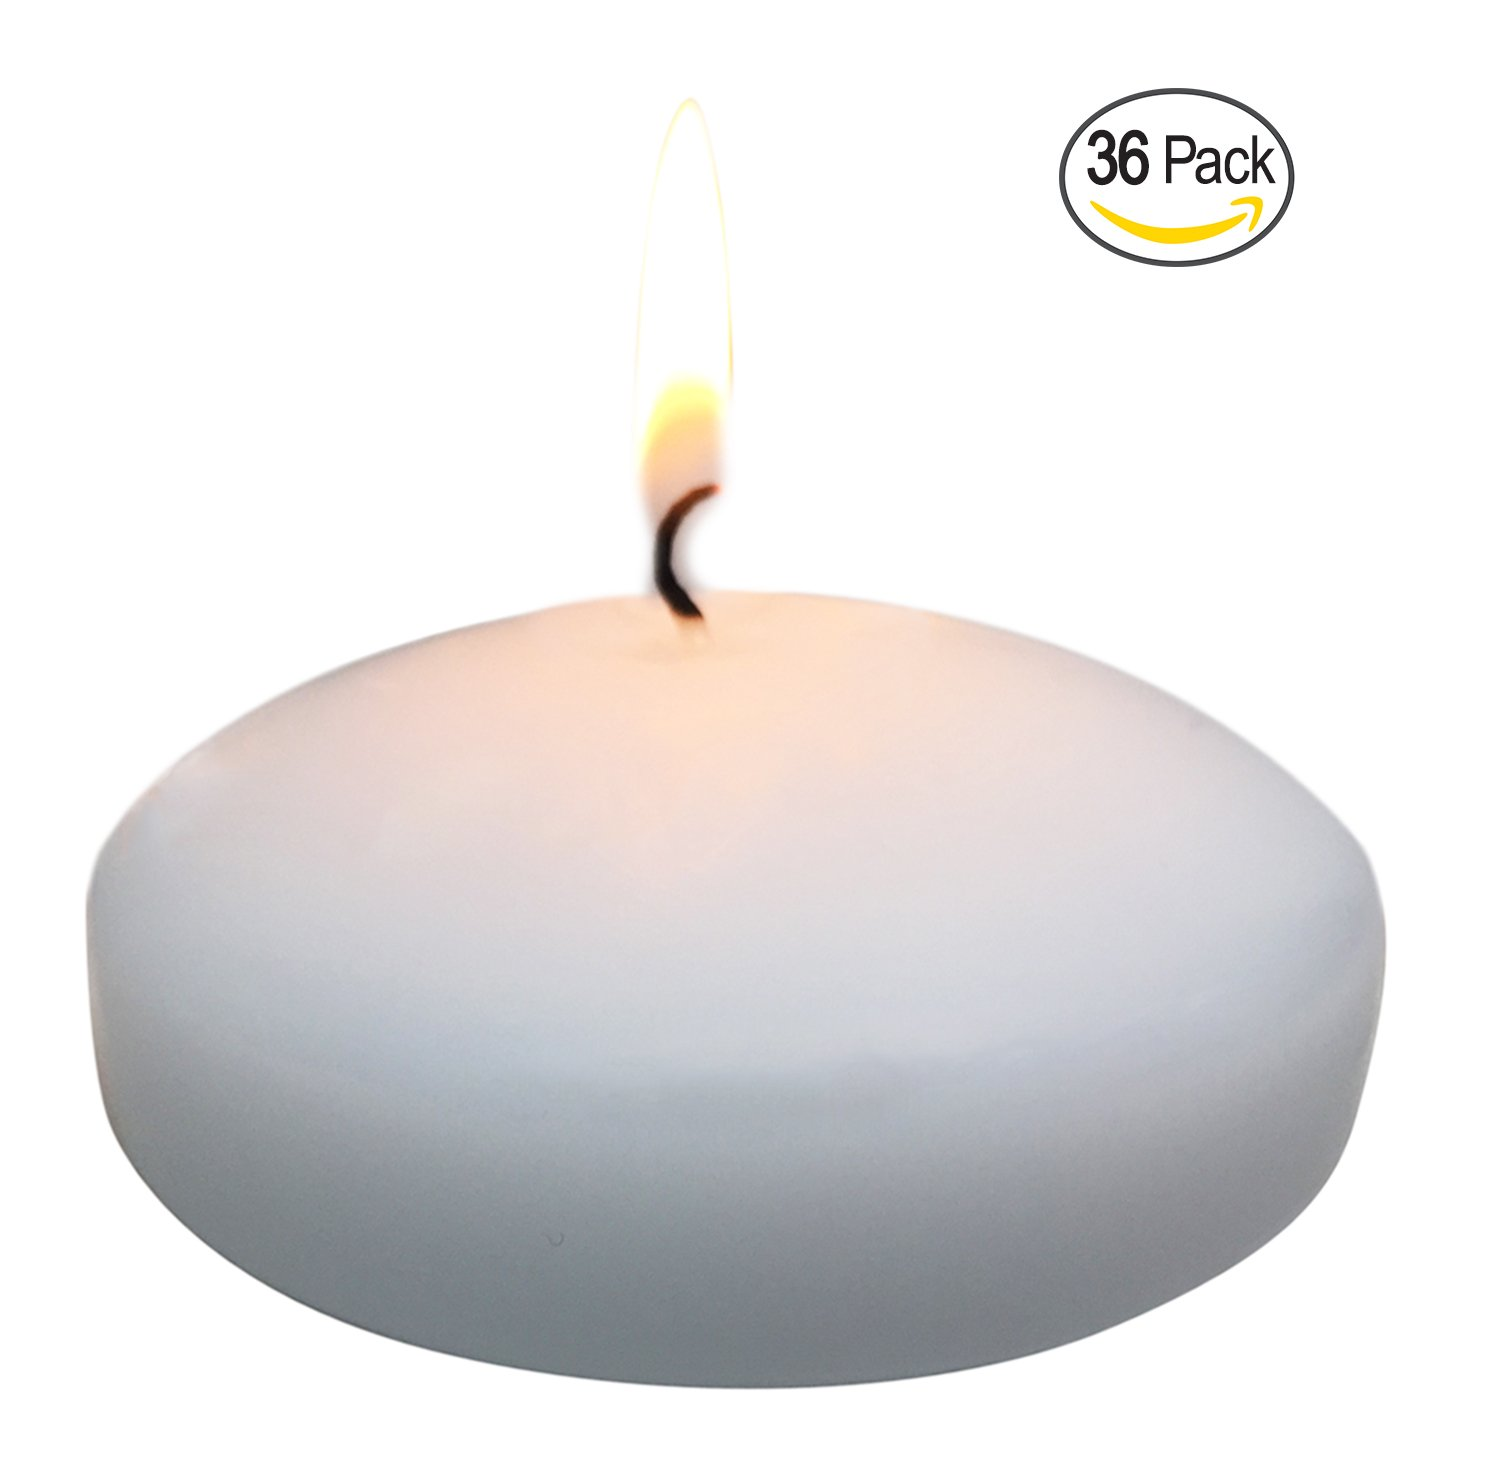 Royal Imports Floating disc Candles for Wedding, Birthday, Holiday & Home Decoration, 3 Inch, White Wax, Set of 36 by Royal Imports (Image #2)